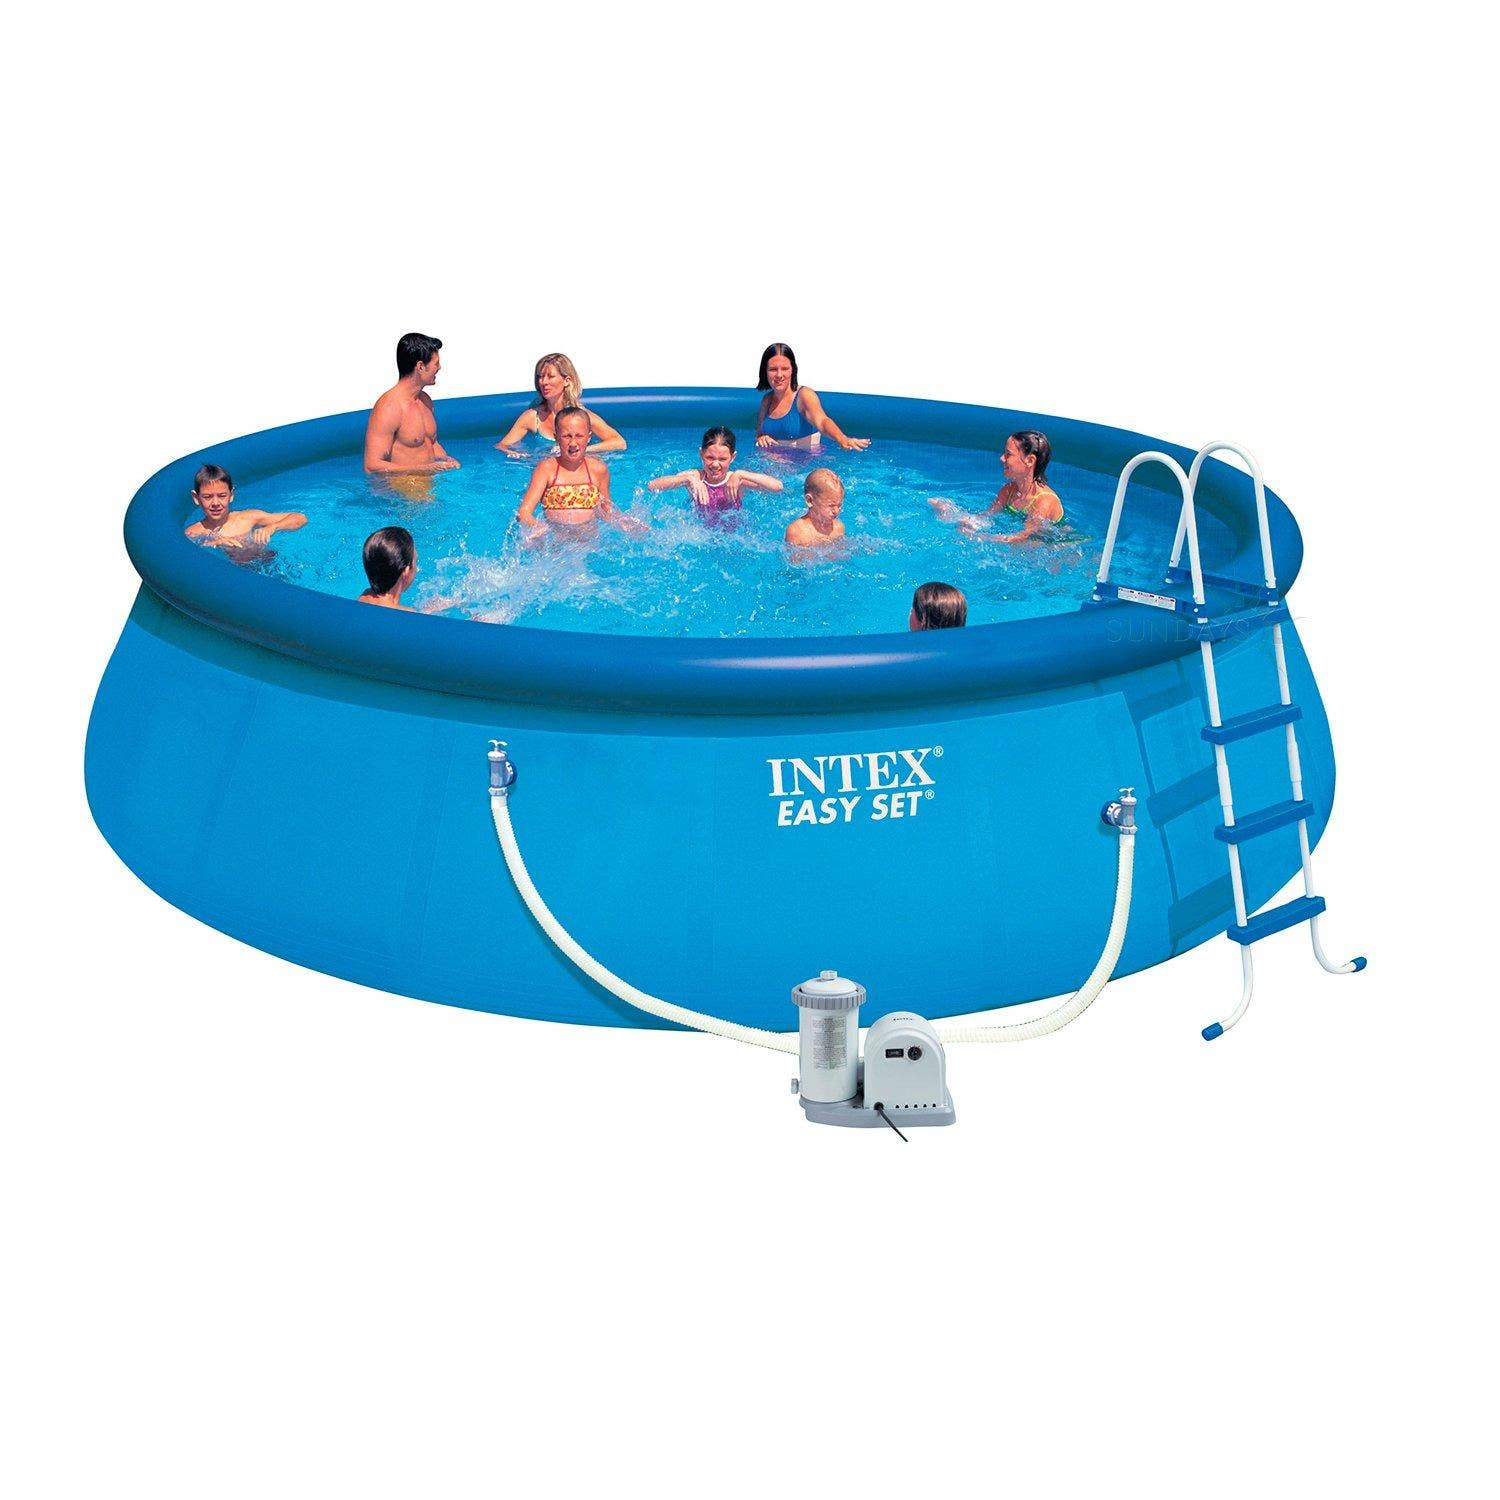 intex 18ft x 48 easy set swimming pool with filter pump. Black Bedroom Furniture Sets. Home Design Ideas